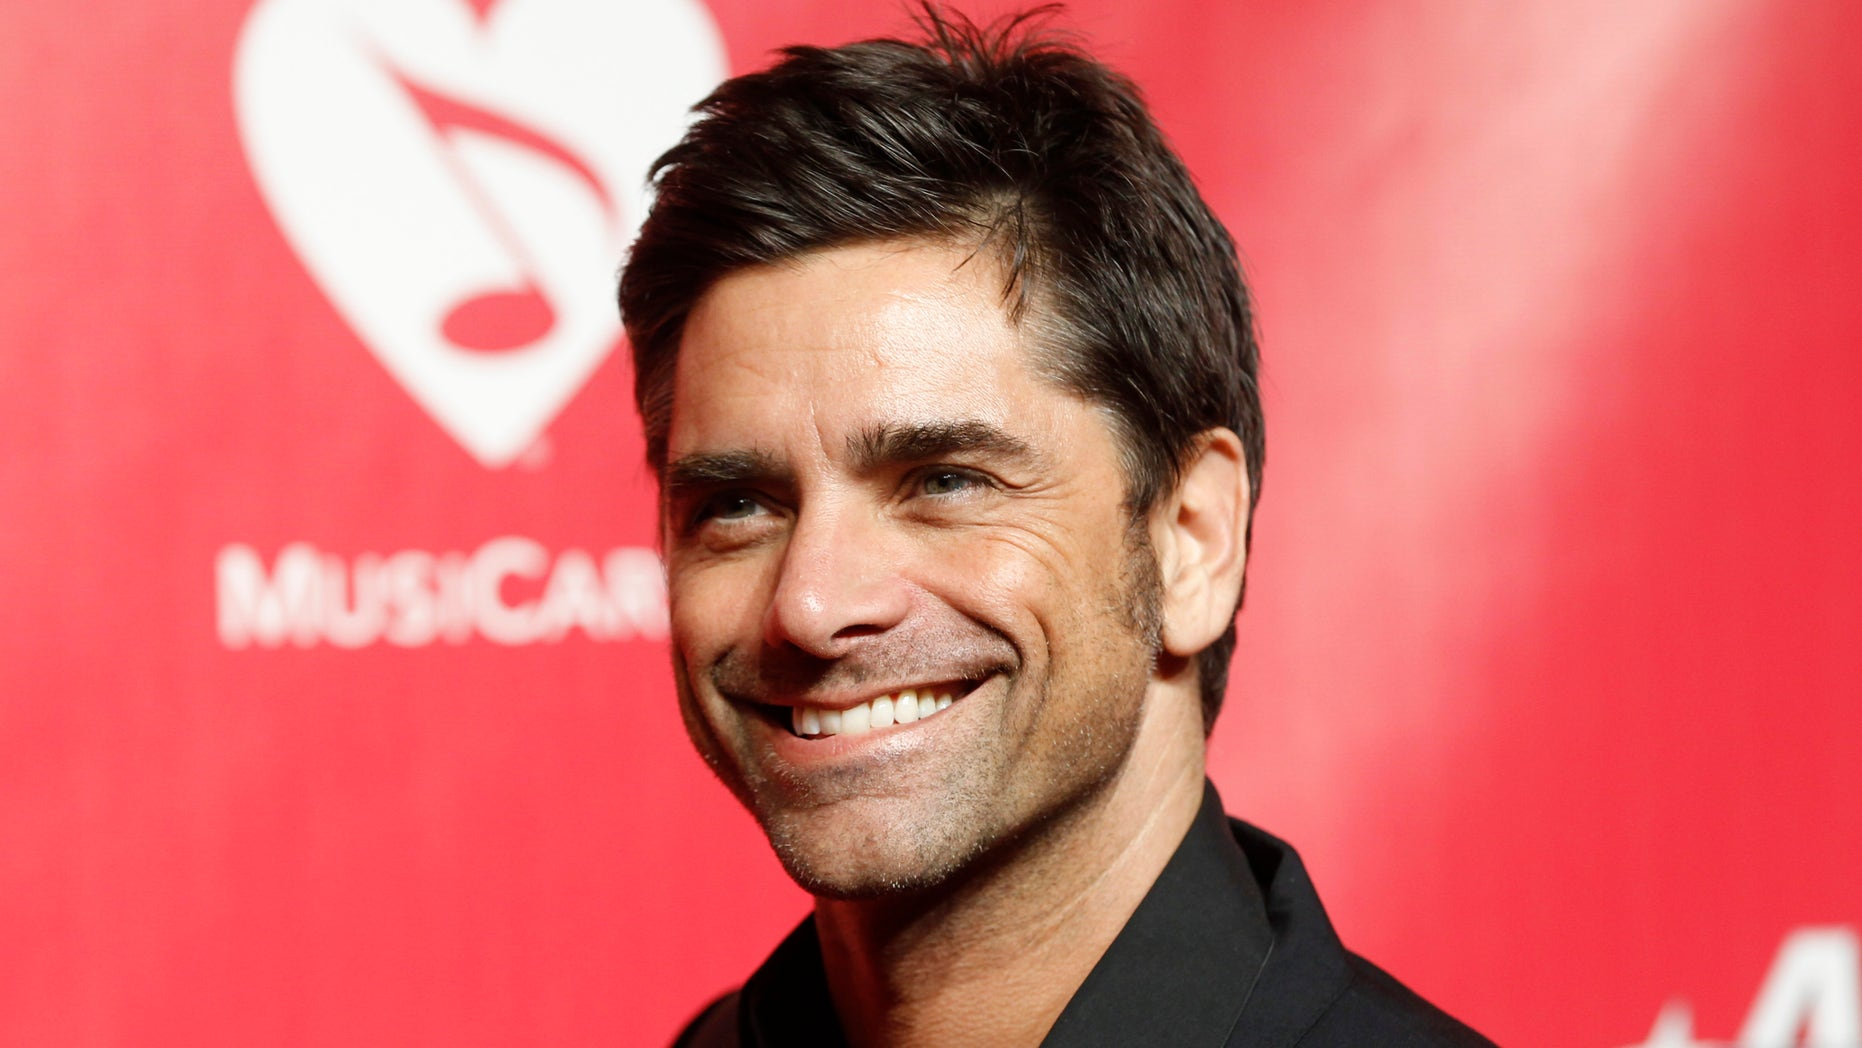 Feb 10, 2012. Actor and musician John Stamos poses at the 2012 MusiCares Person of the Year tribute honoring Paul McCartney in Los Angeles.